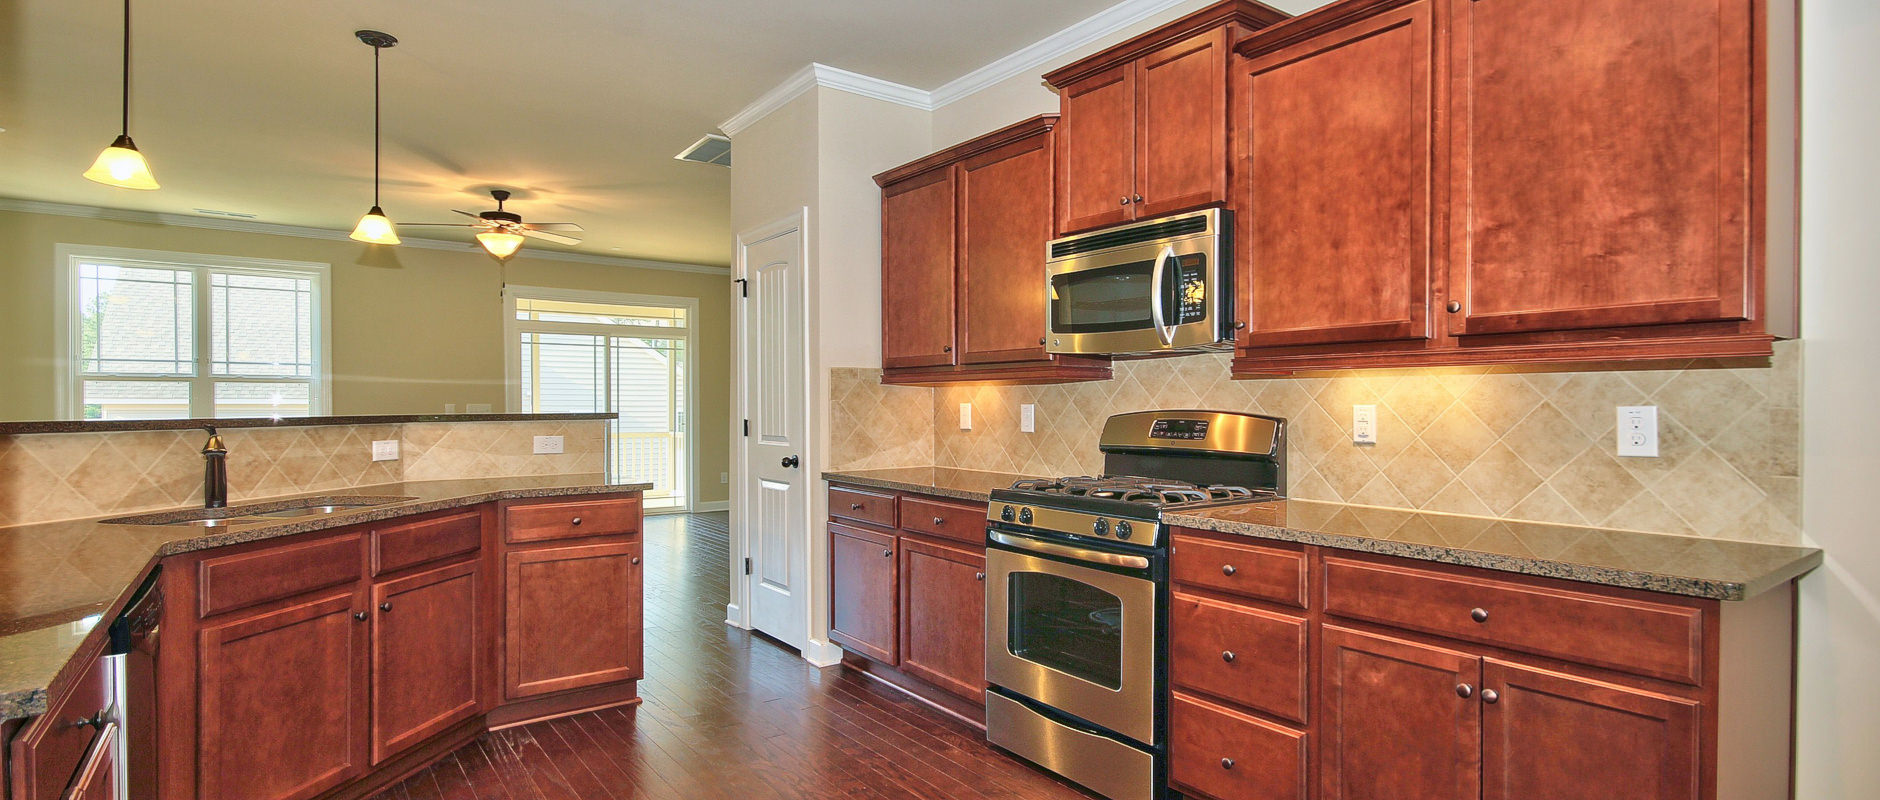 Raleigh new homes for sale